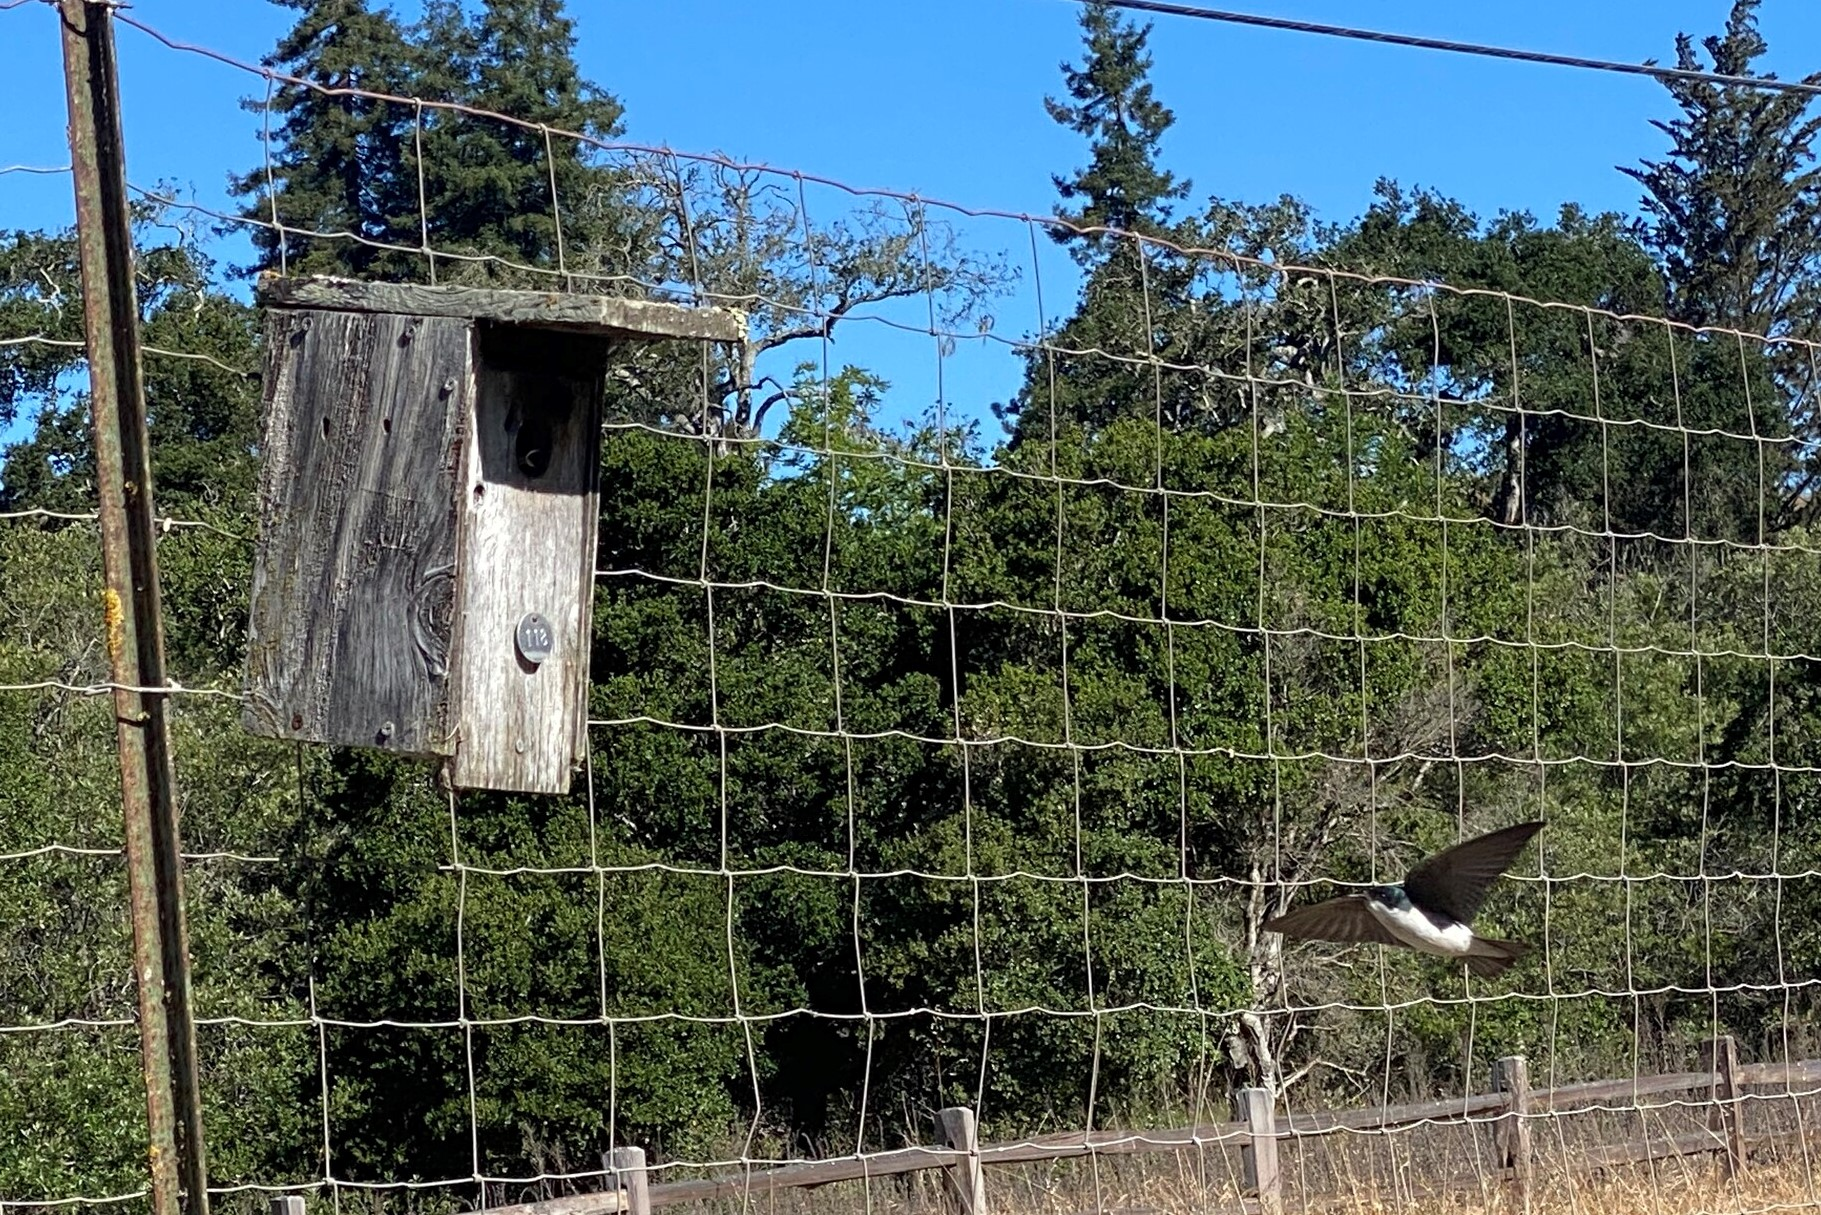 A small colorful bird flies its way to a bird box.